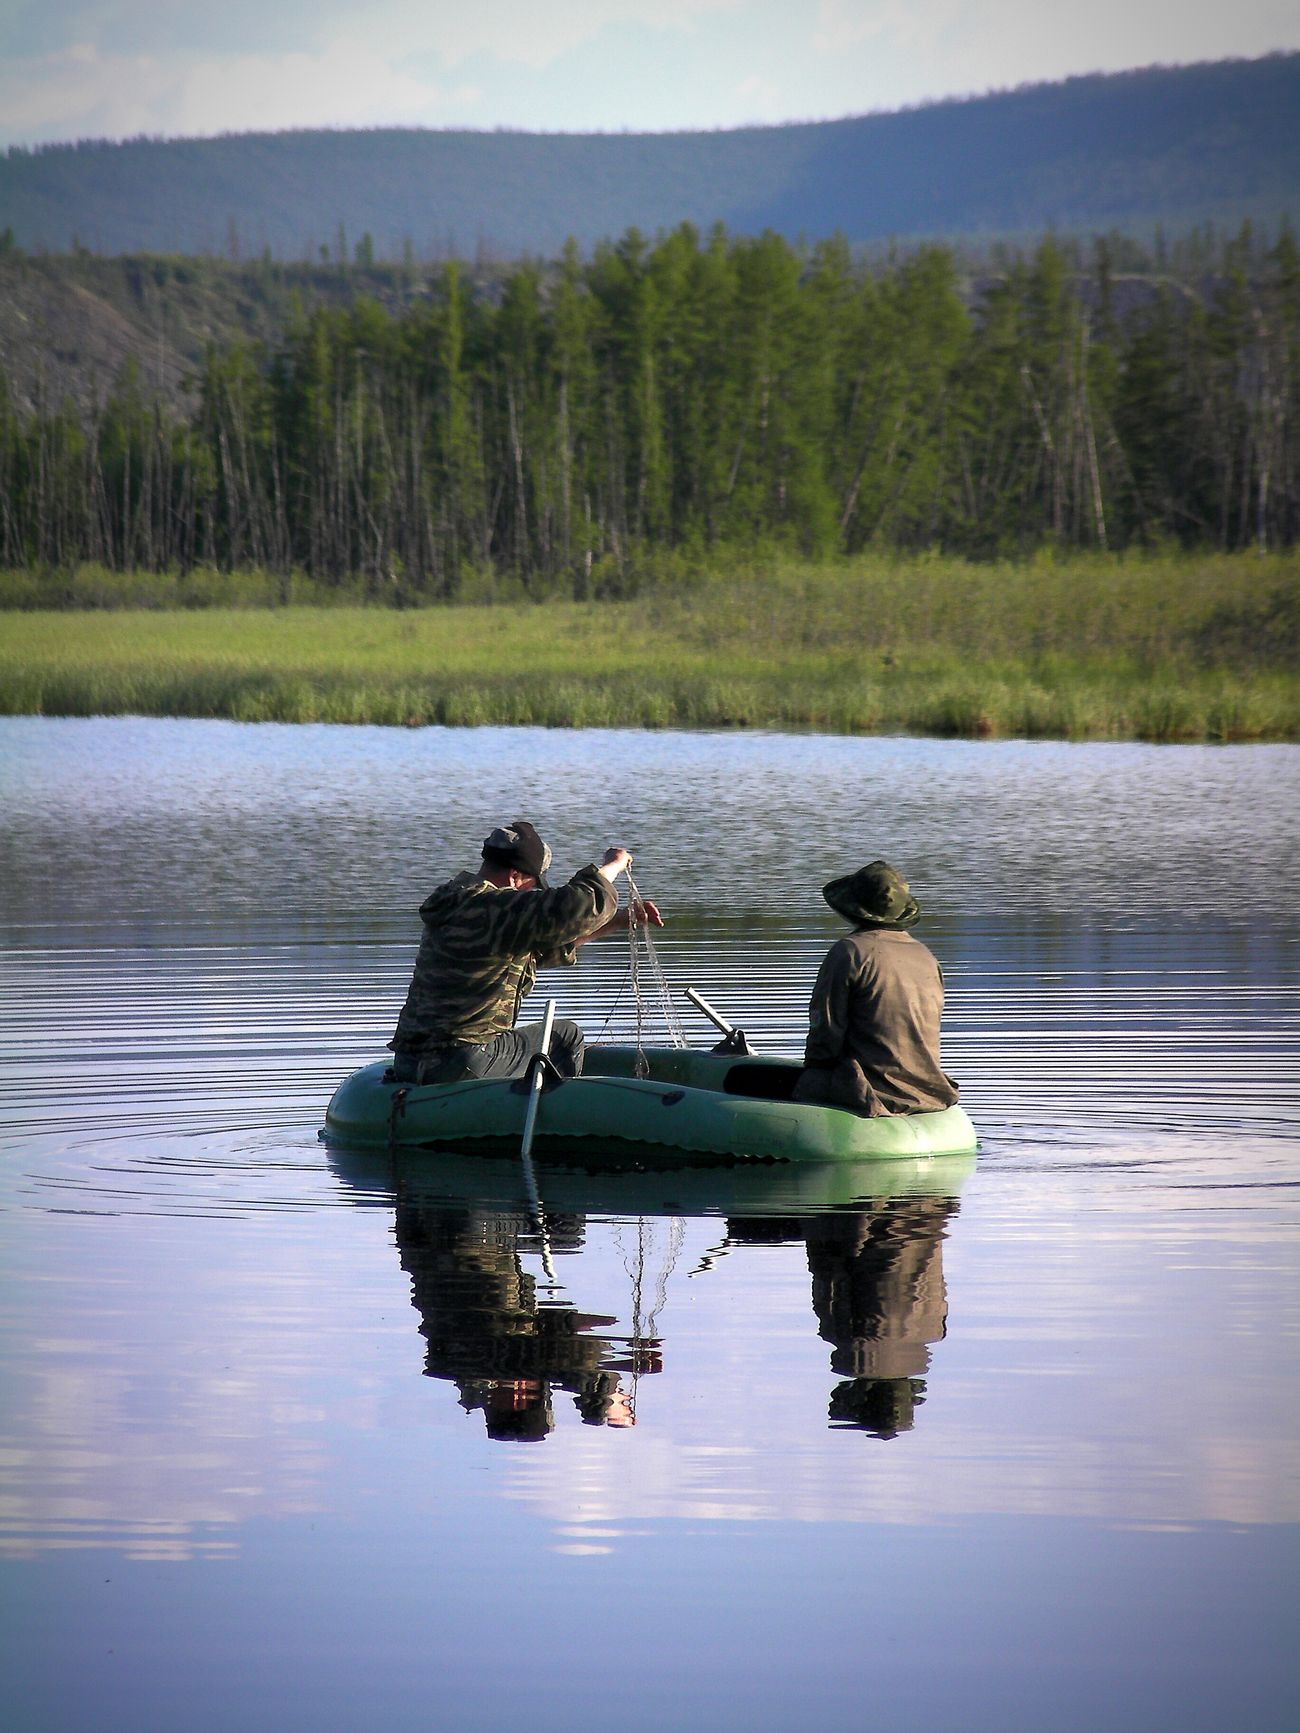 The Adventure Handbook Yakutia Ynykchan Check This Out Taking Photo Fishing Enjoying Life Trip Water Reflections On The River Nature